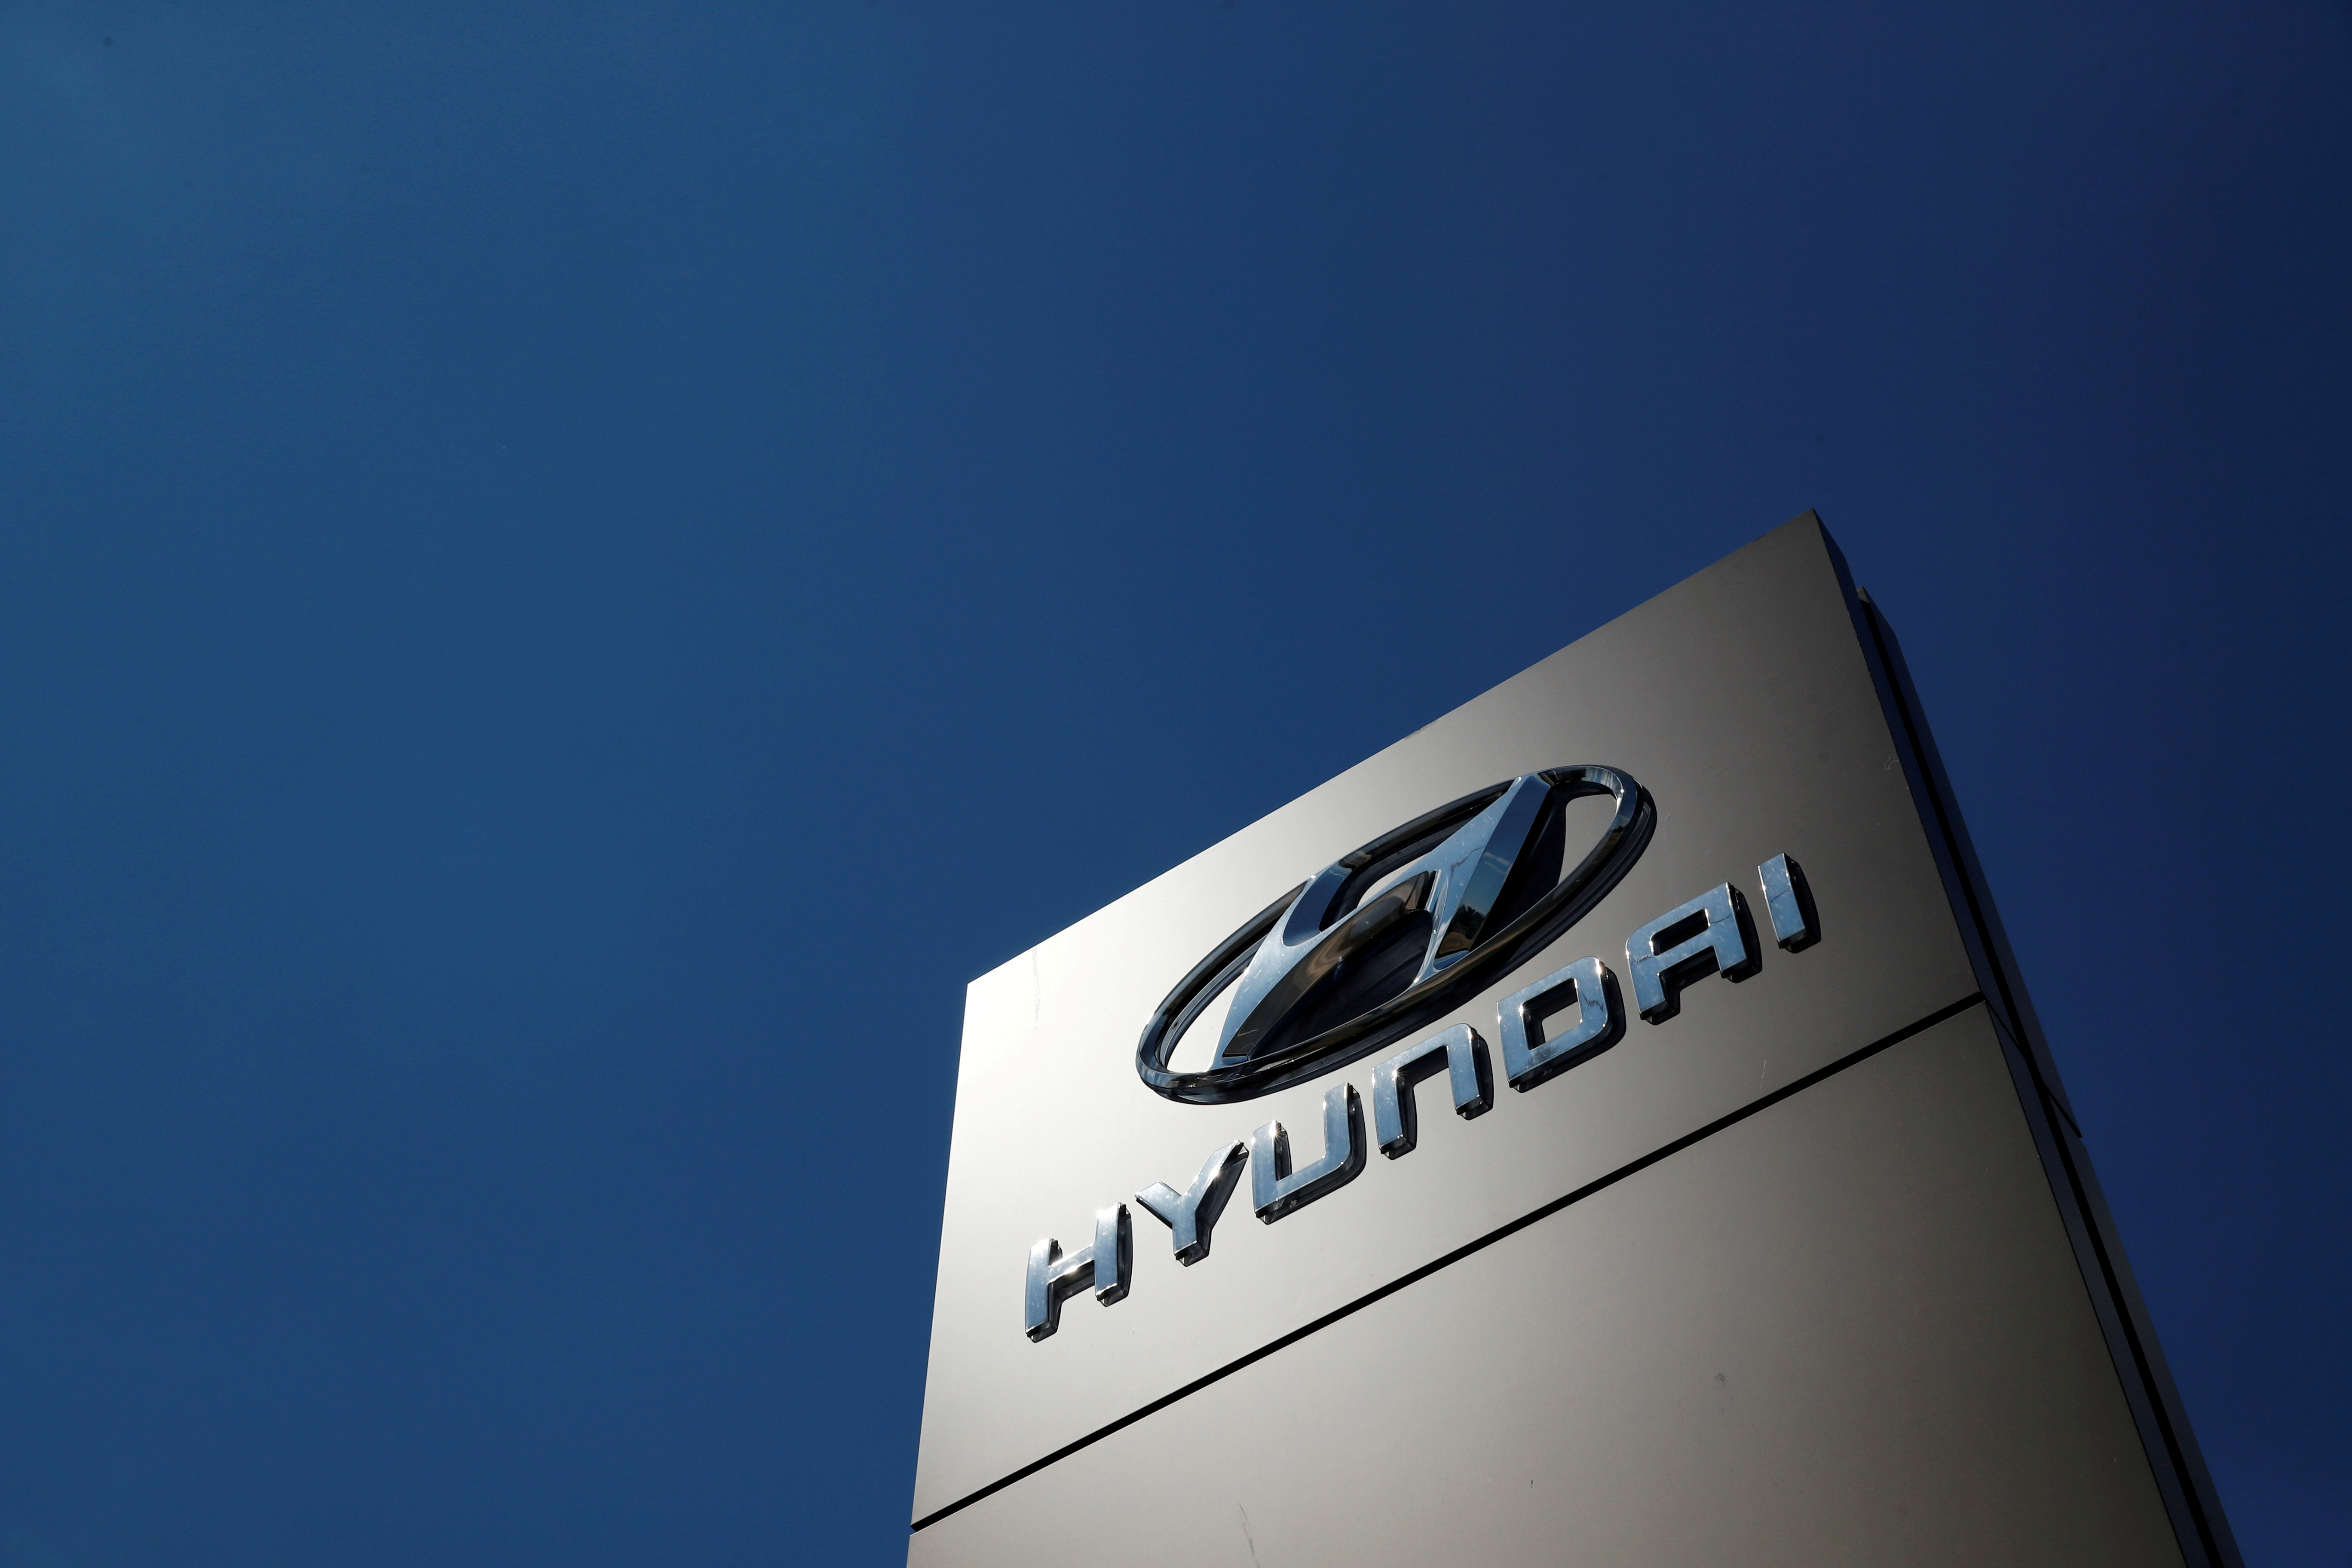 A shop sign of Hyundai is seen outside a car showroom in Bletchley, Milton Keynes, Britain, May 31, 2020. REUTERS/Andrew Boyers